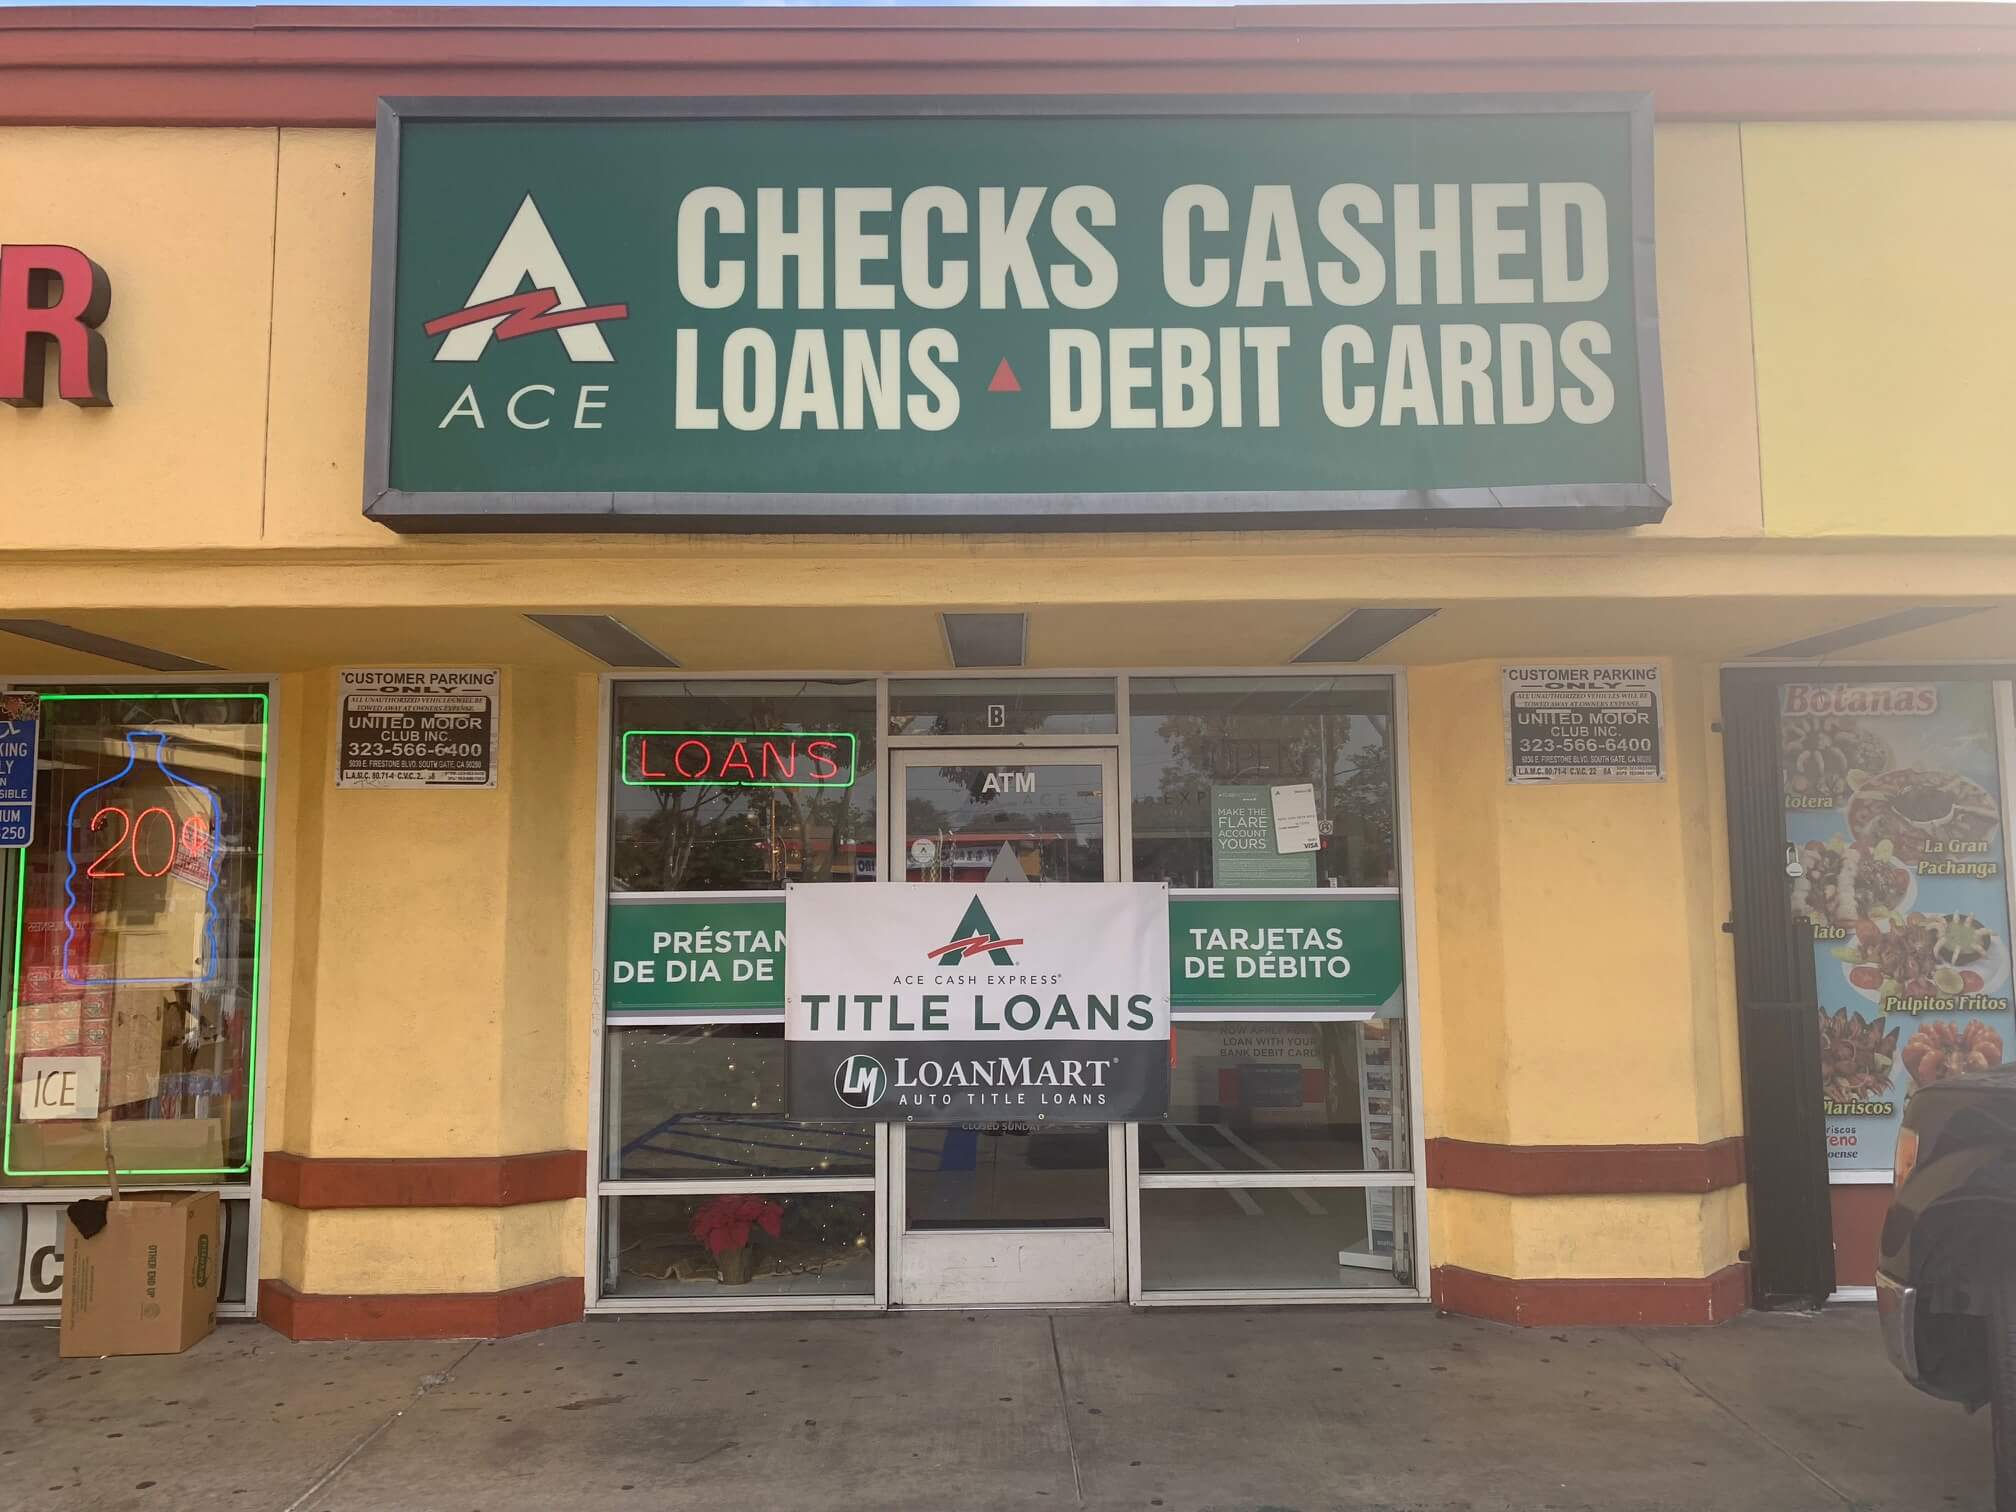 LoanMart Title Loans at ACE Cash Express image 5